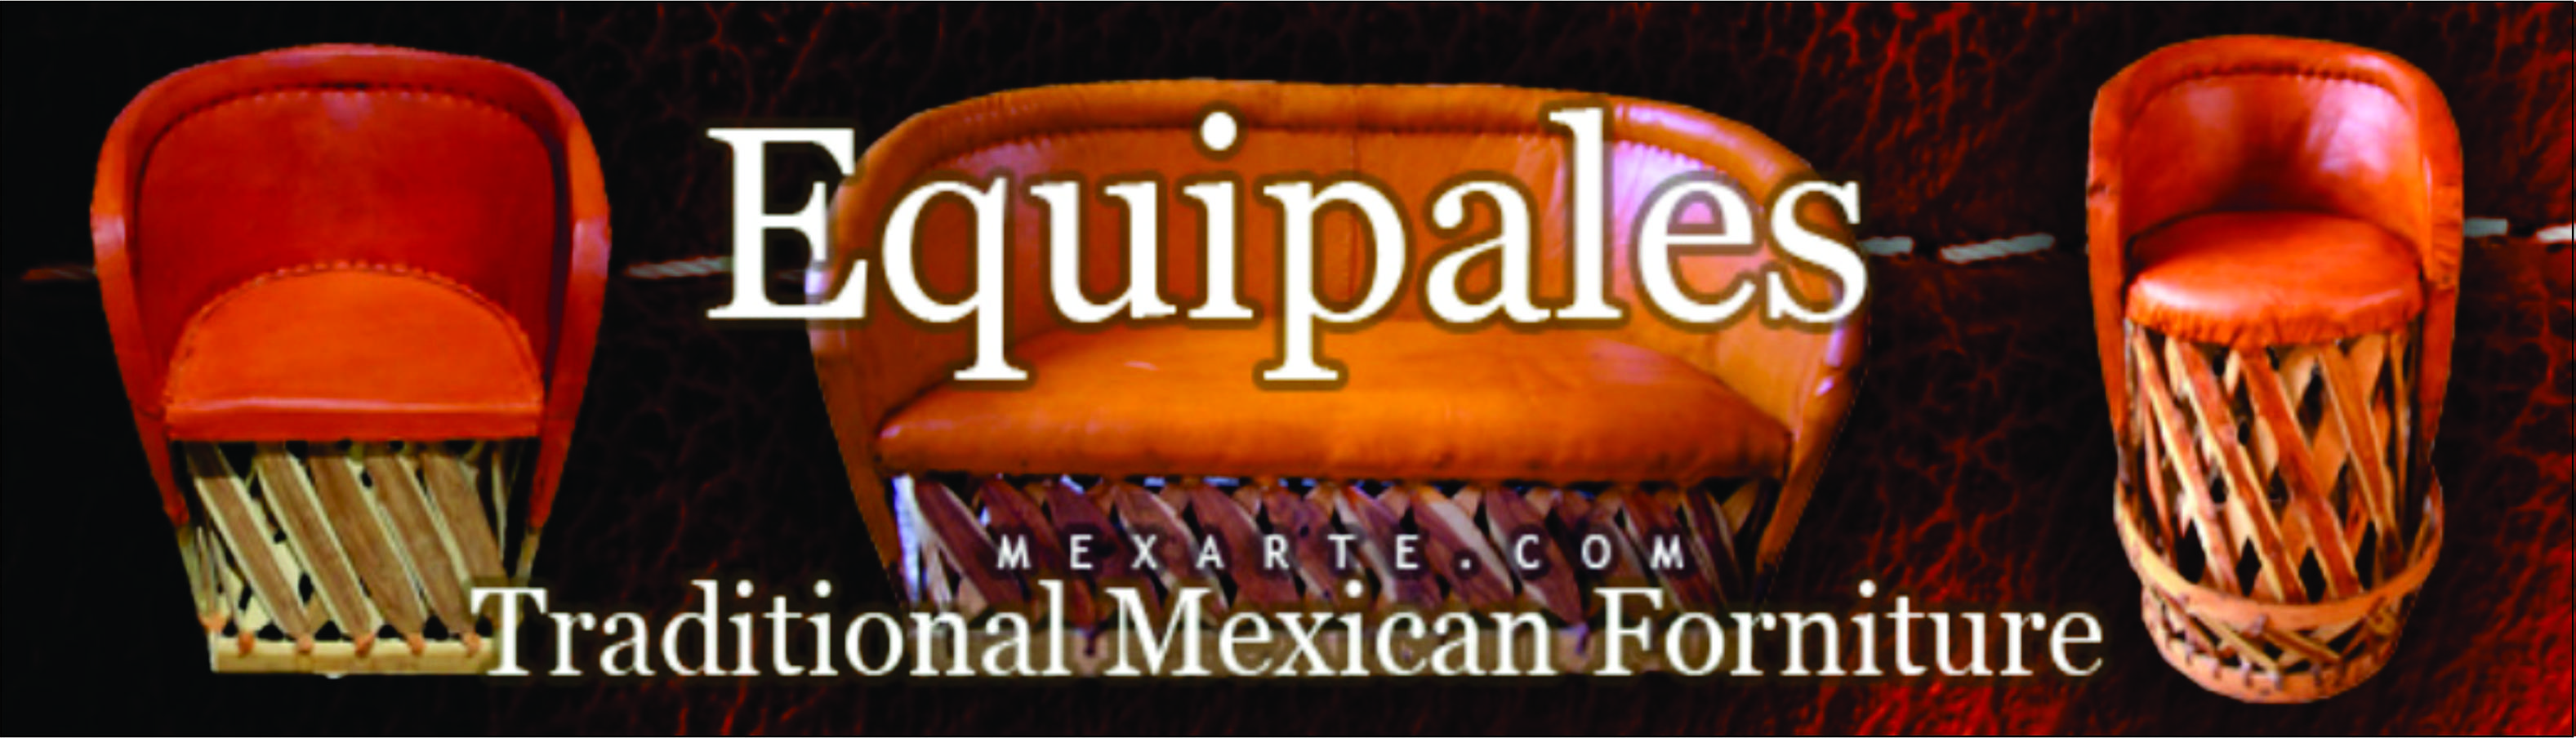 Equipales,Wholesale from Mexico, Mexican products wholesale, Wholesale Mexican arts and crafts, Mexican handcrafts wholesale, preColumbian replicas, Wholesale Mexican pottery, Wholesale Mexican ceramics, Maya art replicas, Aztec art replicas, Traditional Mexican arts and crafts